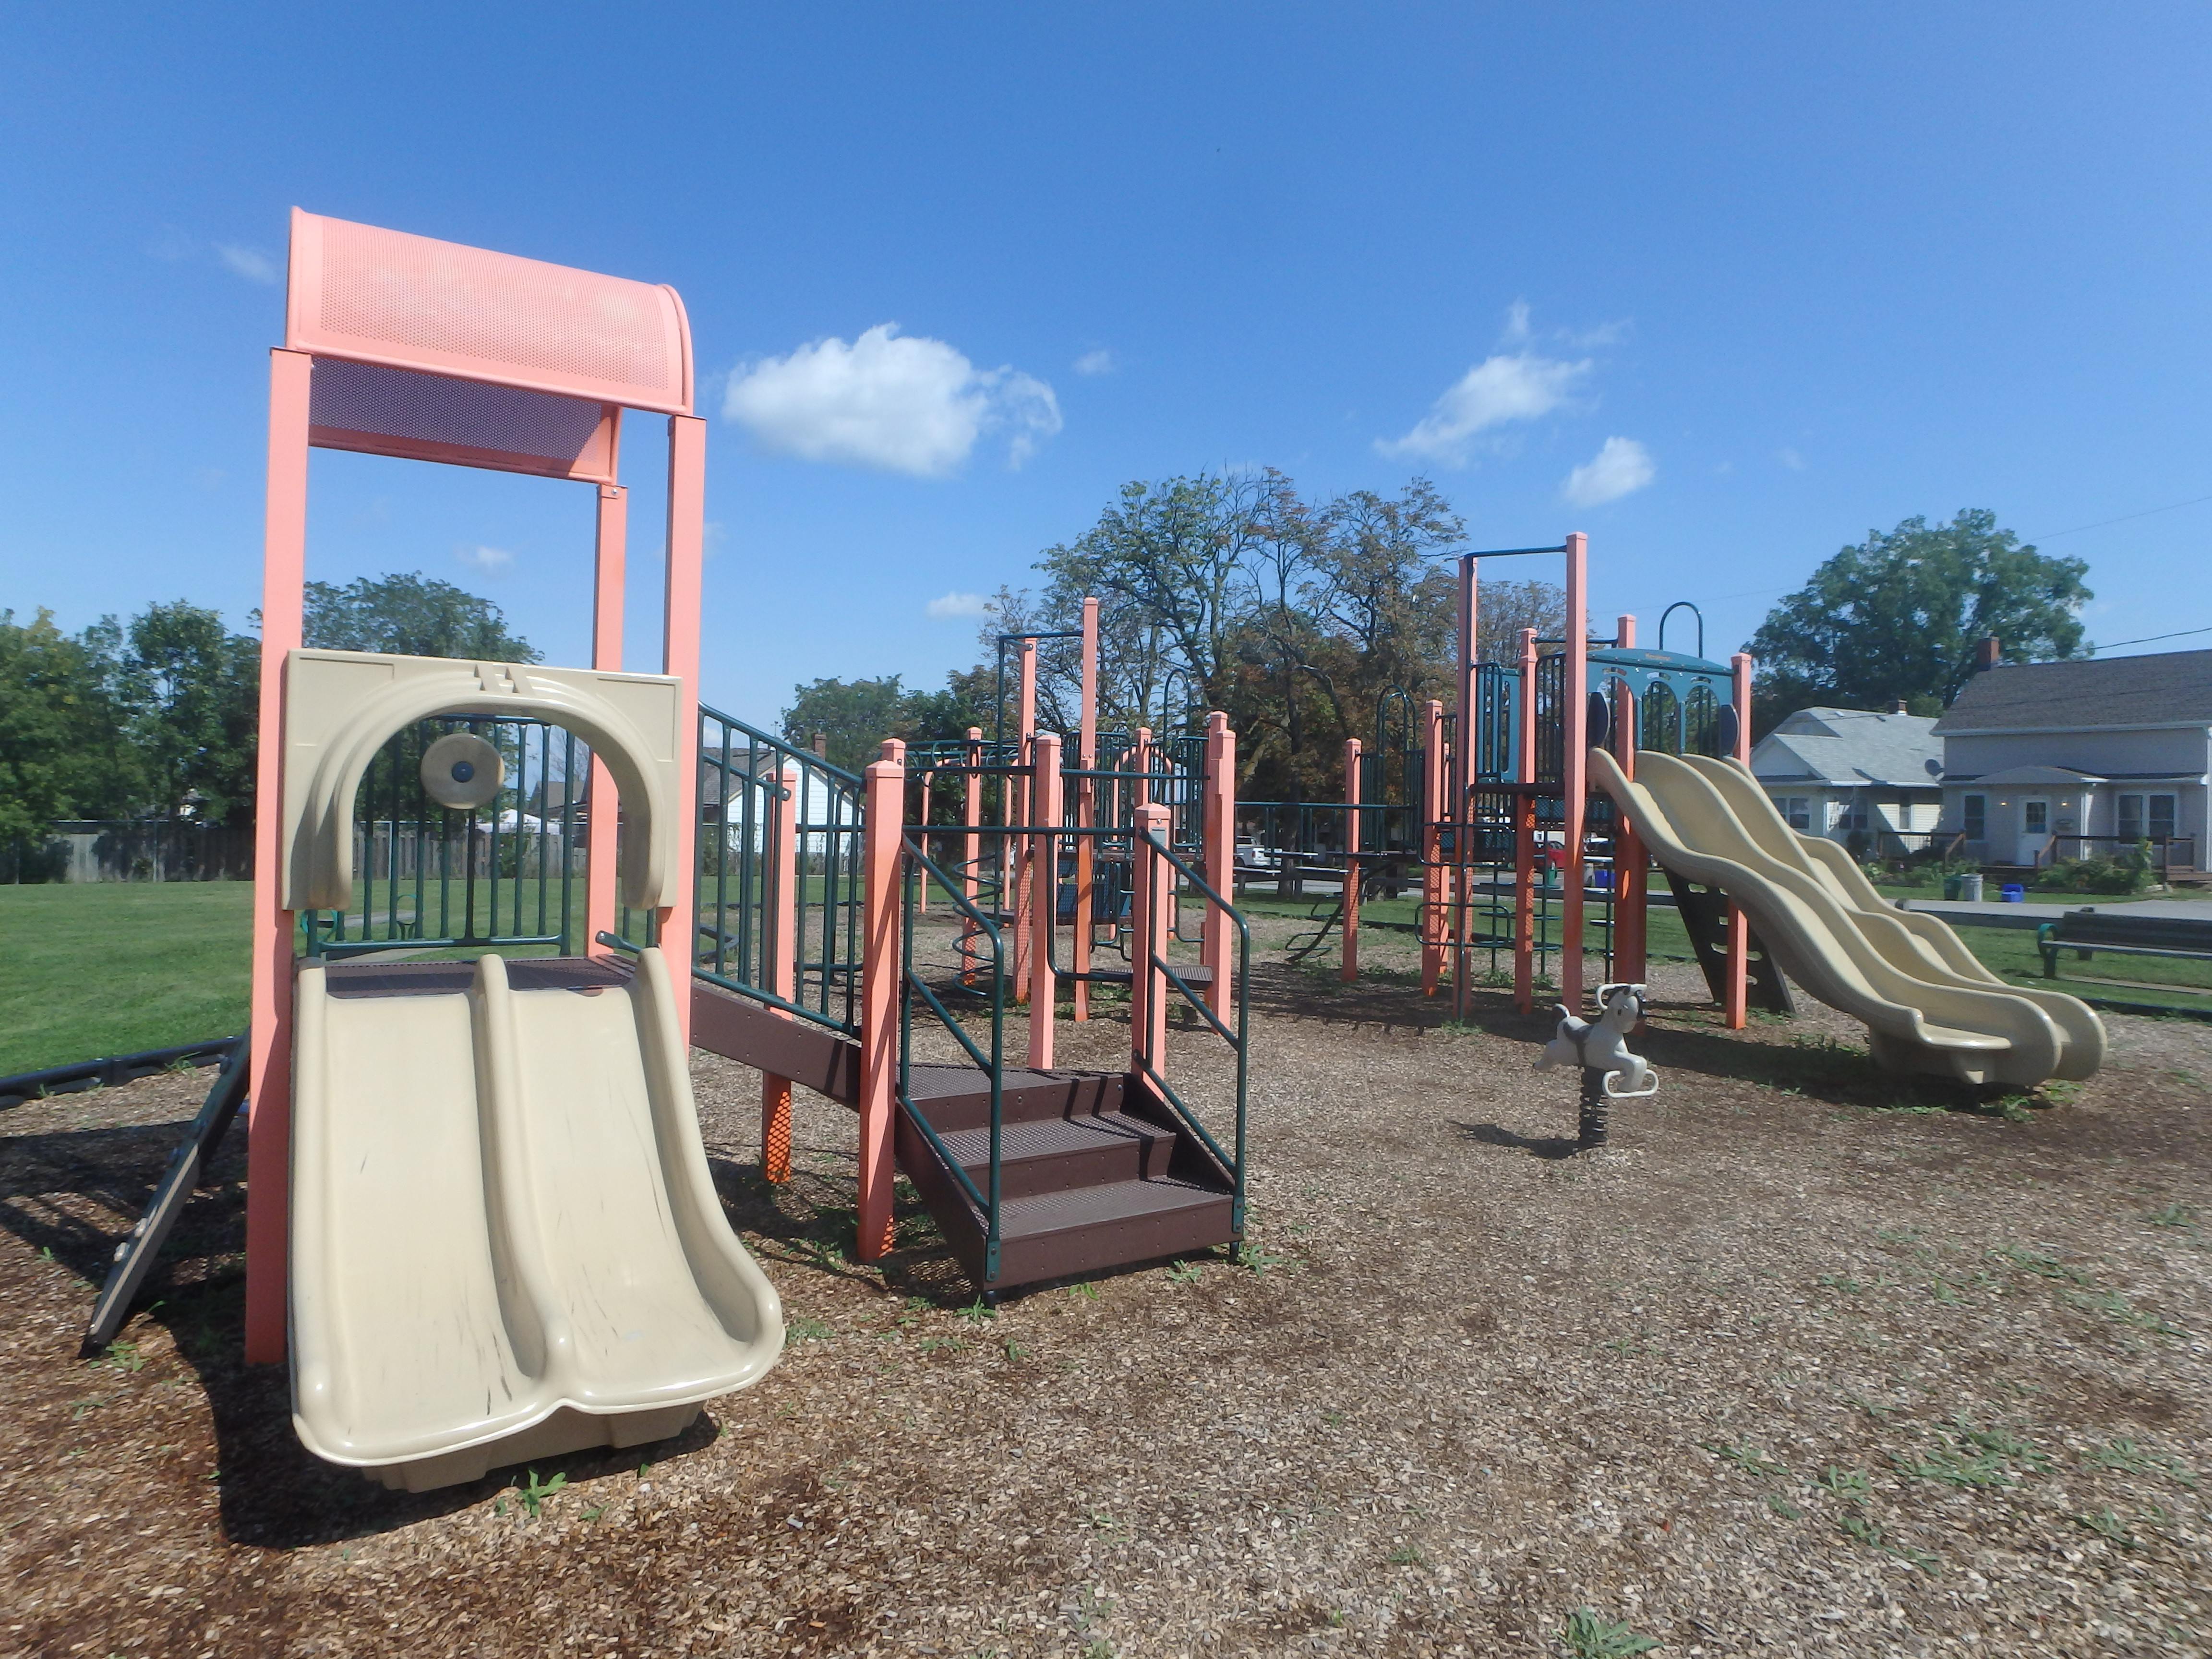 G:\!PARKS CEMETERIES FORESTRY AND HORTICULTURE\Parks-Inventory\Play-Equipment\Mapleview Park\Mapleview 1.JPG